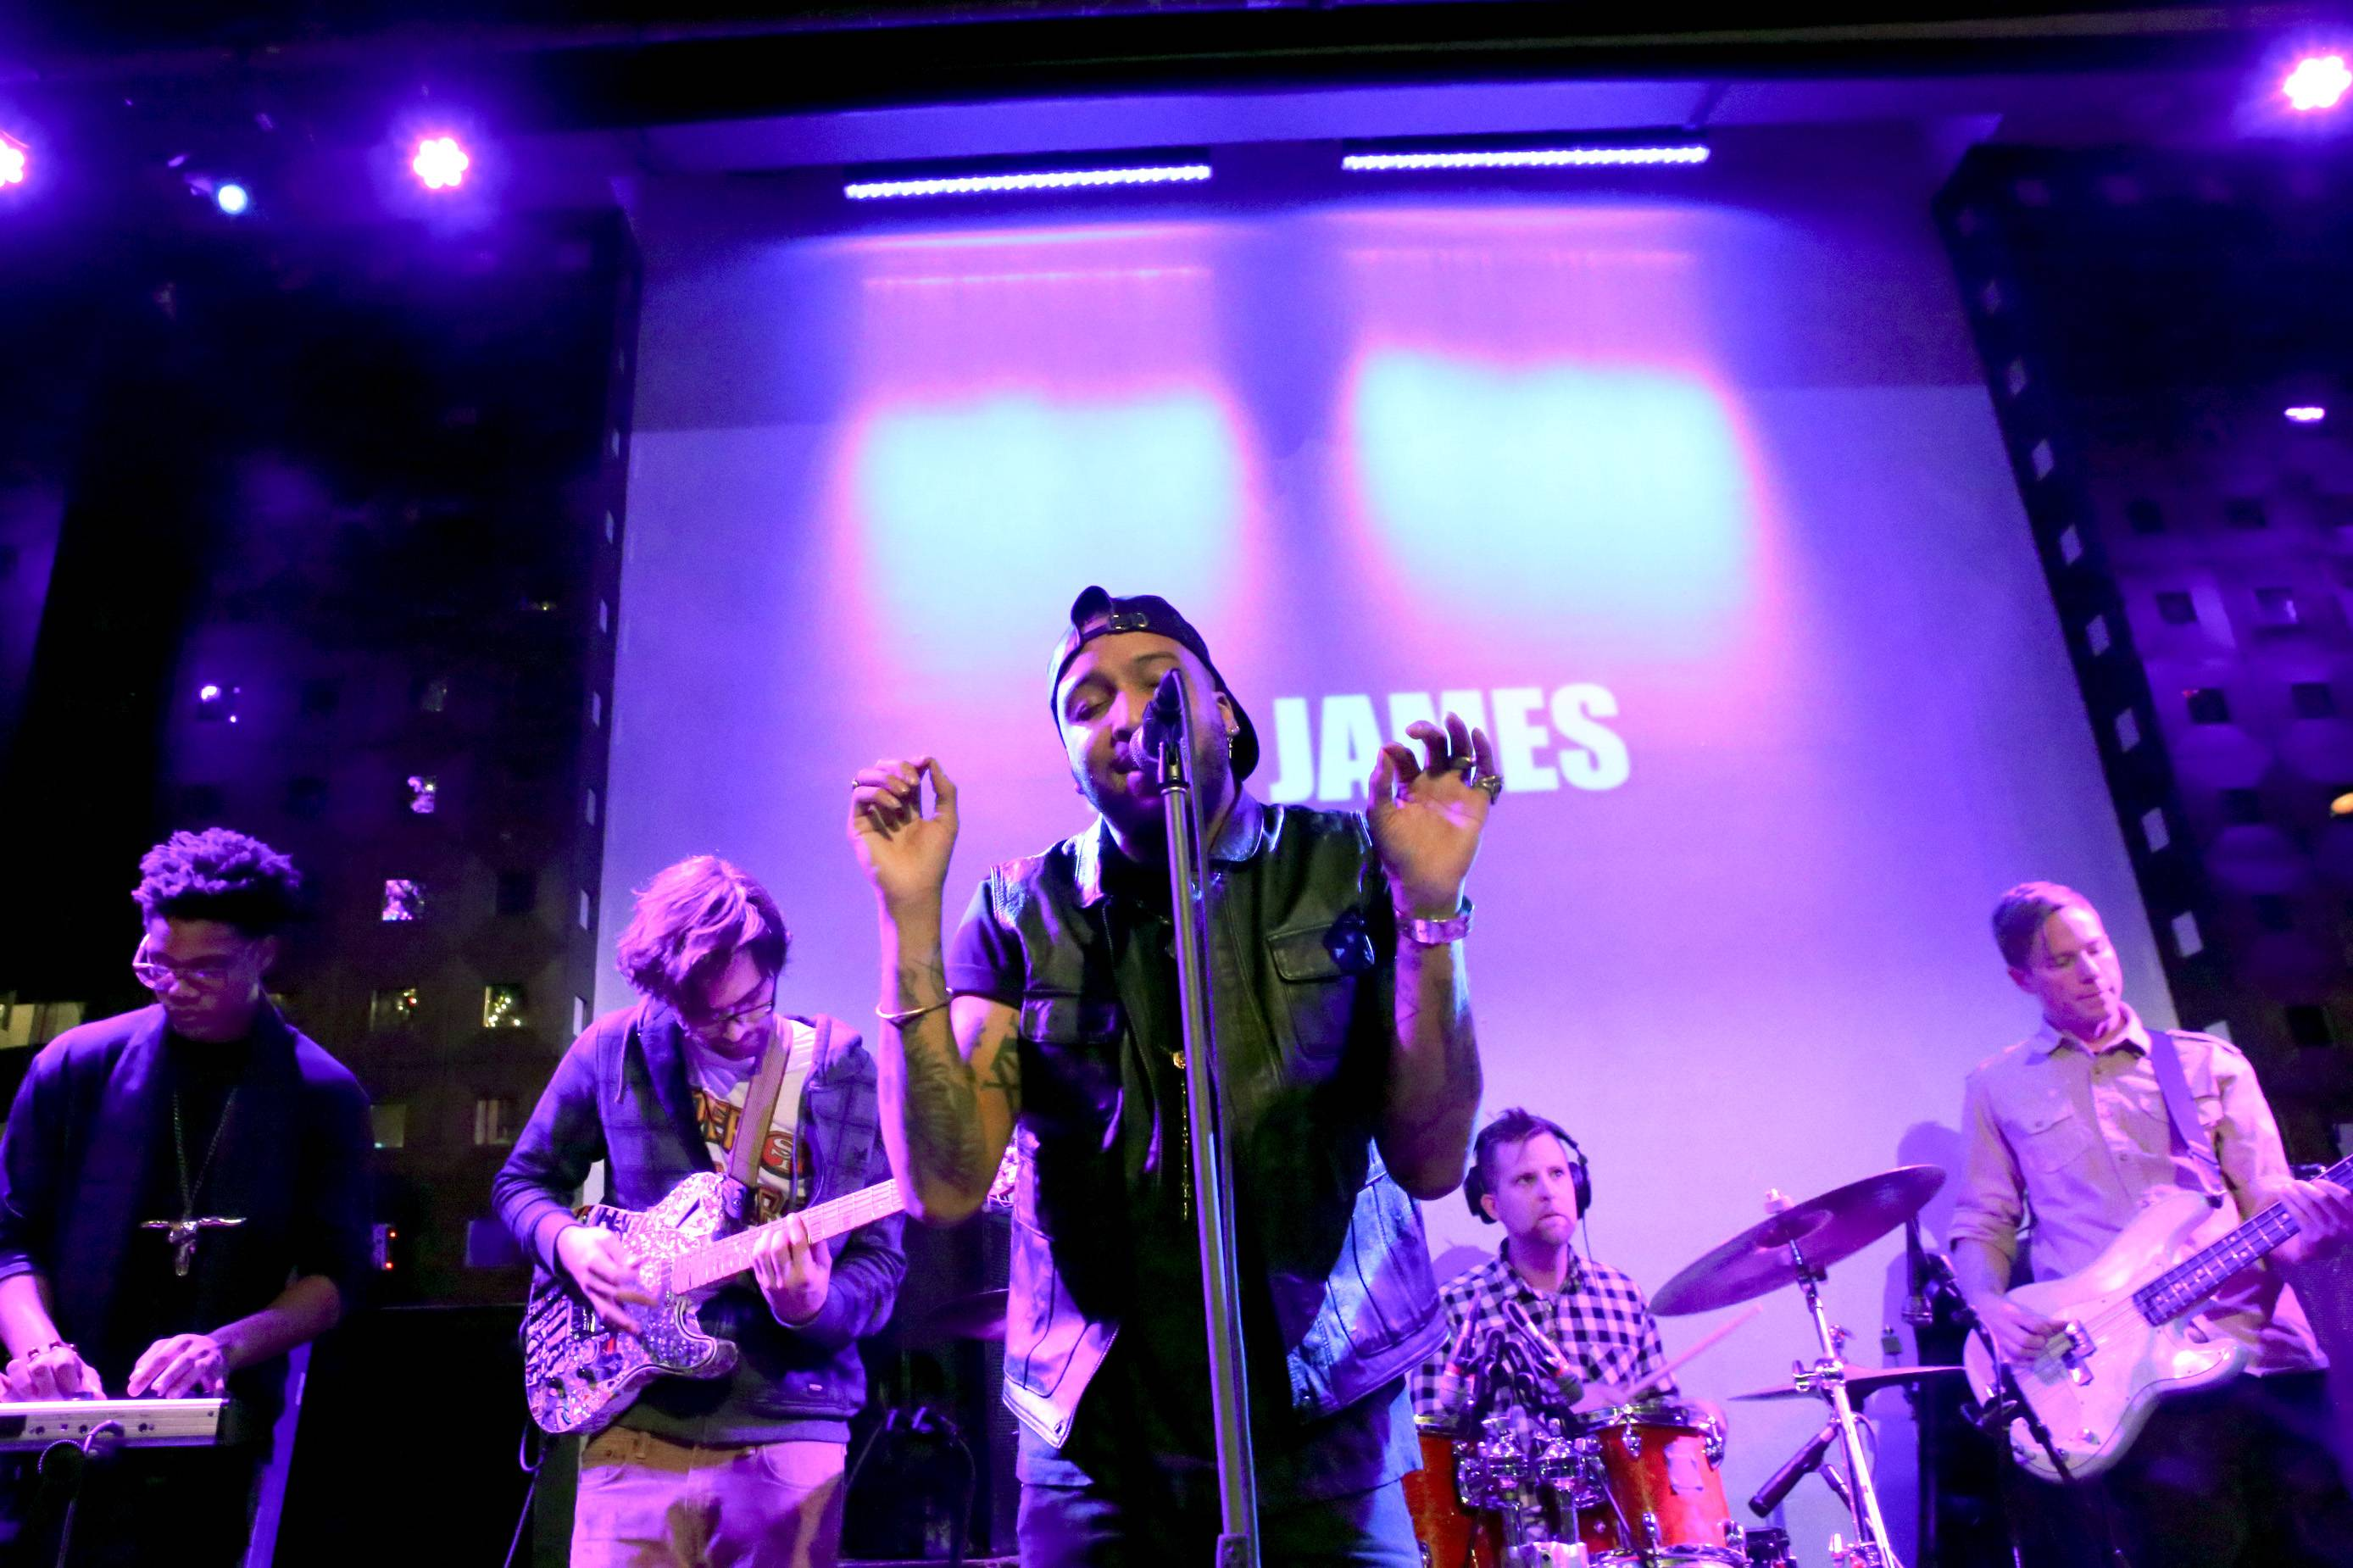 Clap Ya Hands - Singer Ro James gets the crowd going during his high energy set.(Photo: Bennett Raglin/BET/Getty Images for BET)